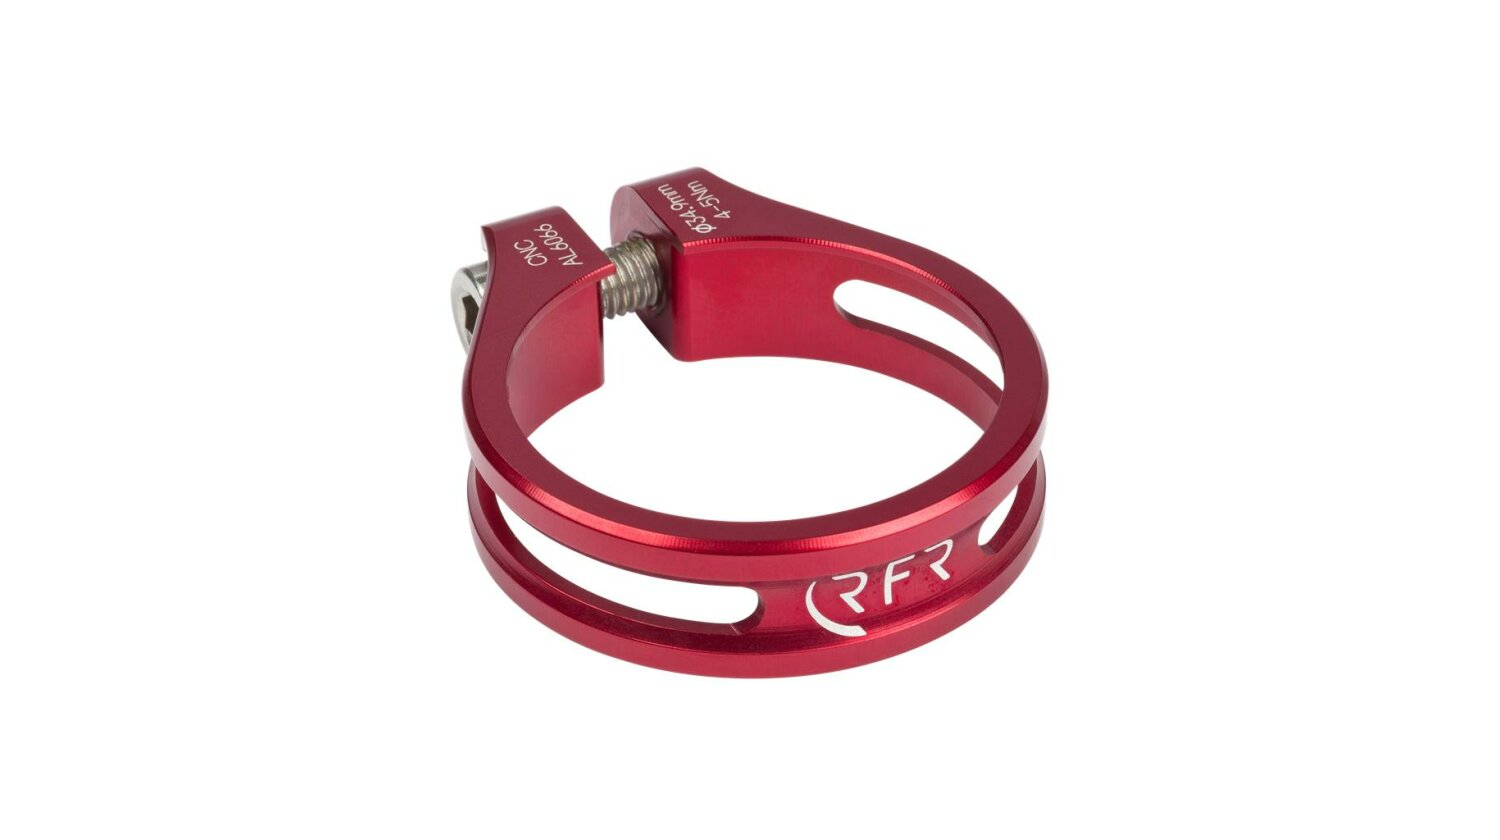 RFR Sattelklemme 34,9 mm Ultralight red